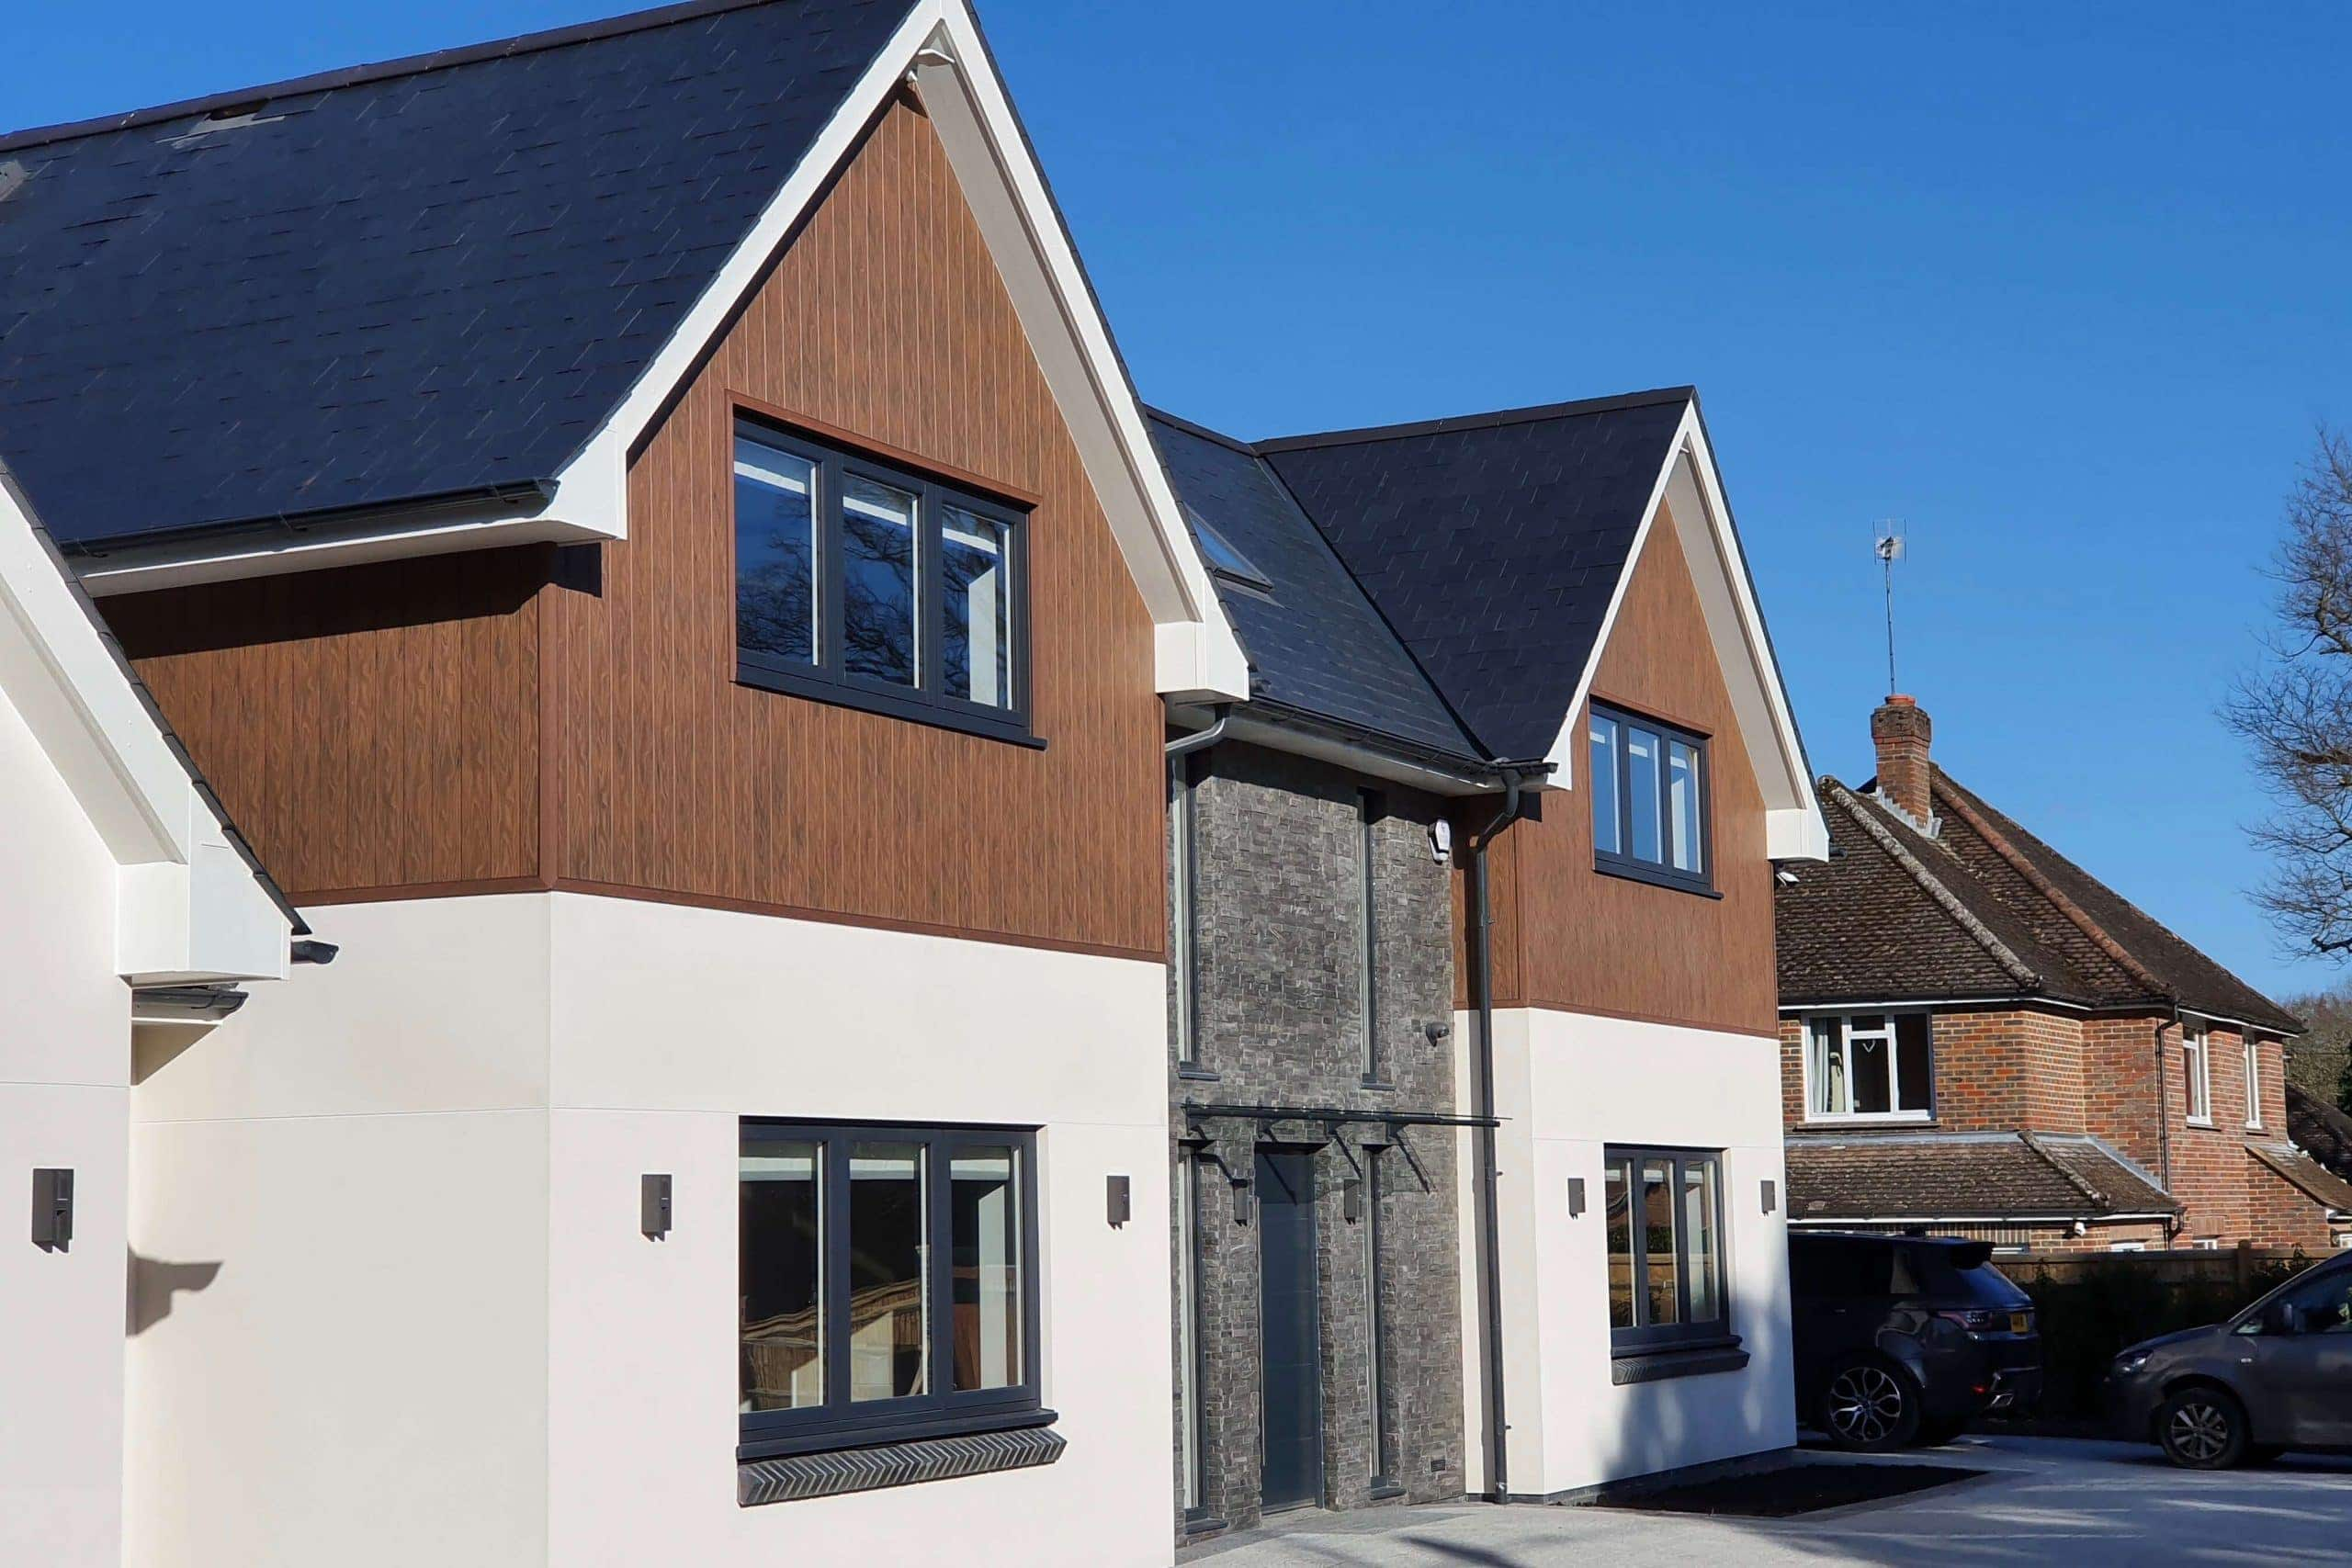 Exterior of Scandia Hus new build that Sub Cool FM undertook MVHR and air con full project for - timber frame house